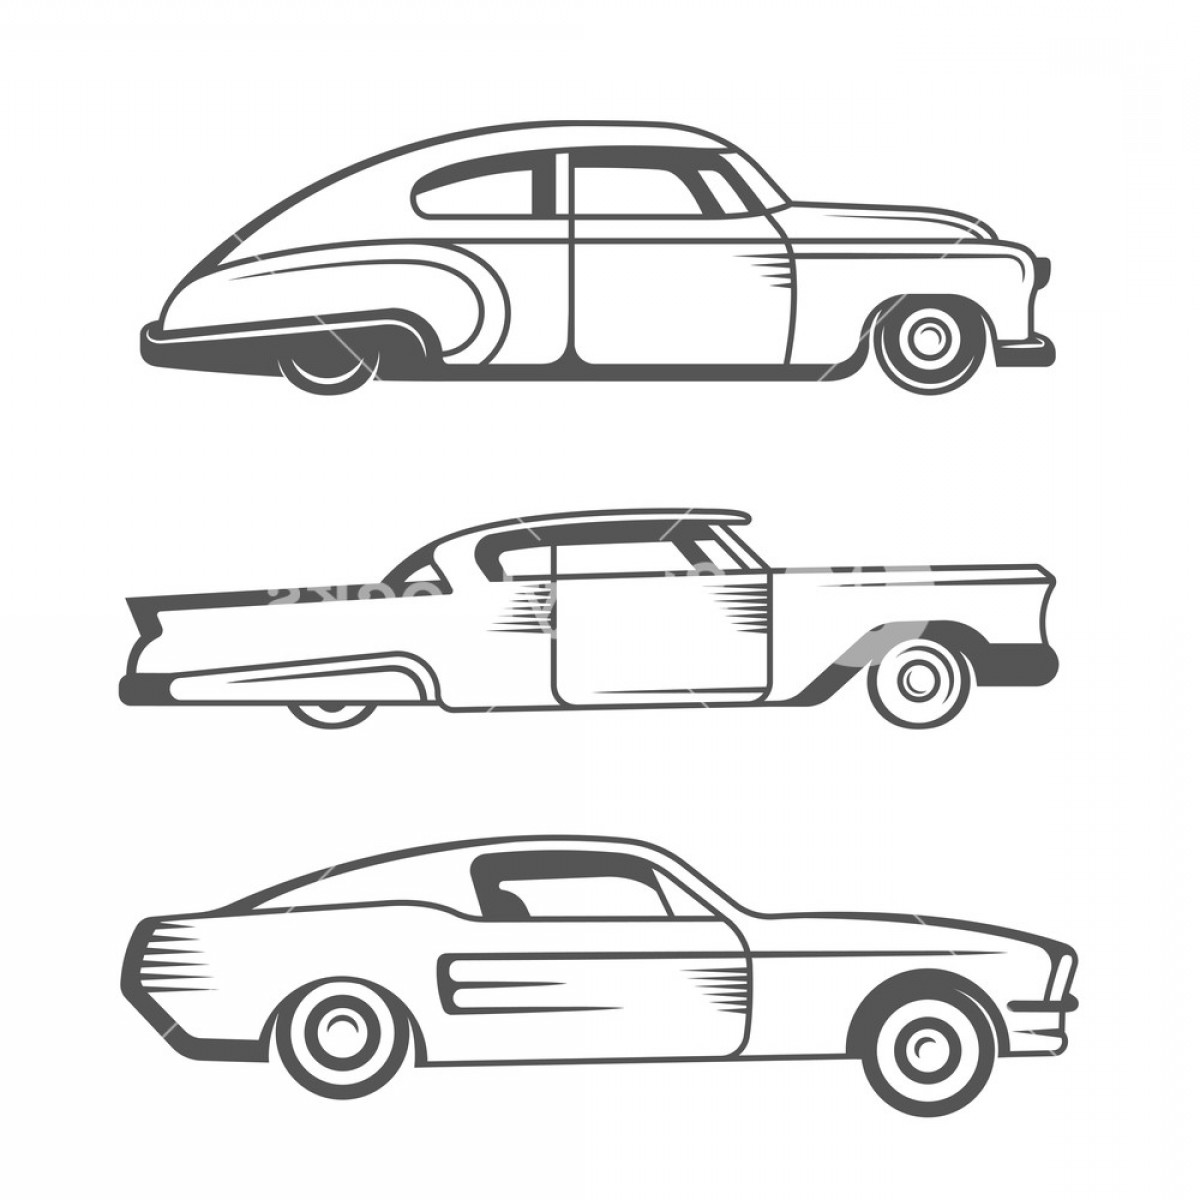 Lowrider Vector: Set Vintage Lowrider Cars And Elements Design Collection Black And White Classic And Old Retro Car Stock Vector Rsxkb Mgfjbzvu